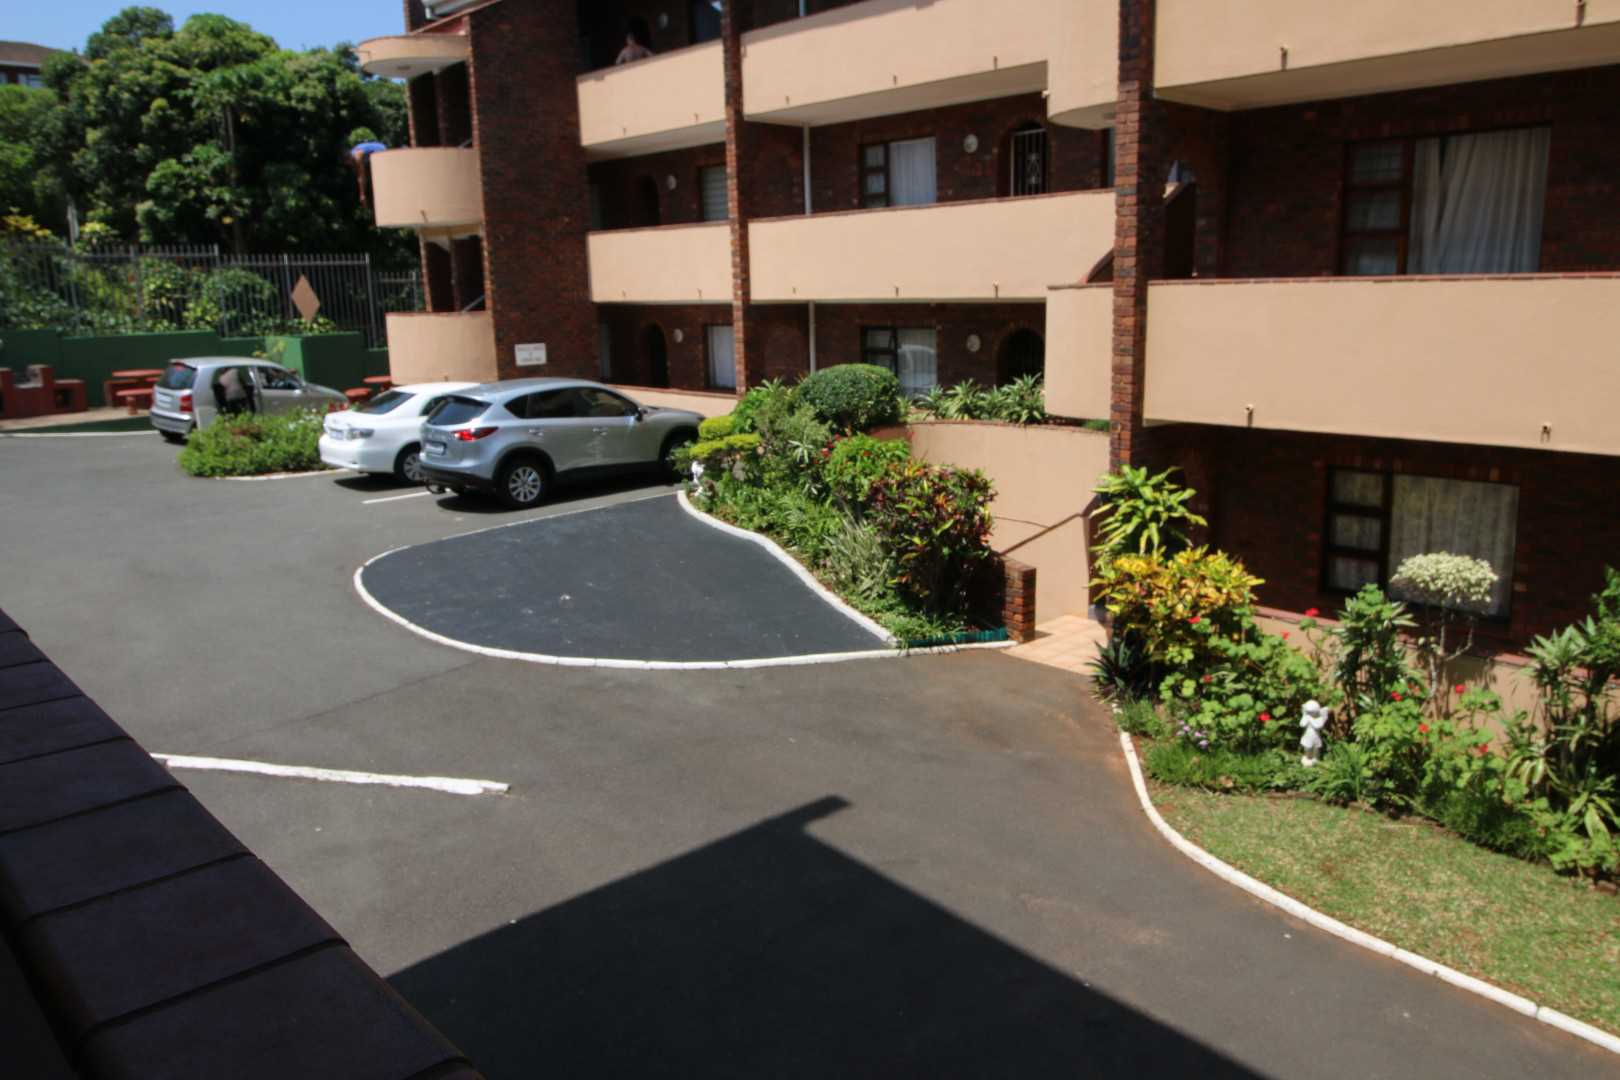 Very neat and well maintained complex with extra parking bays etc.